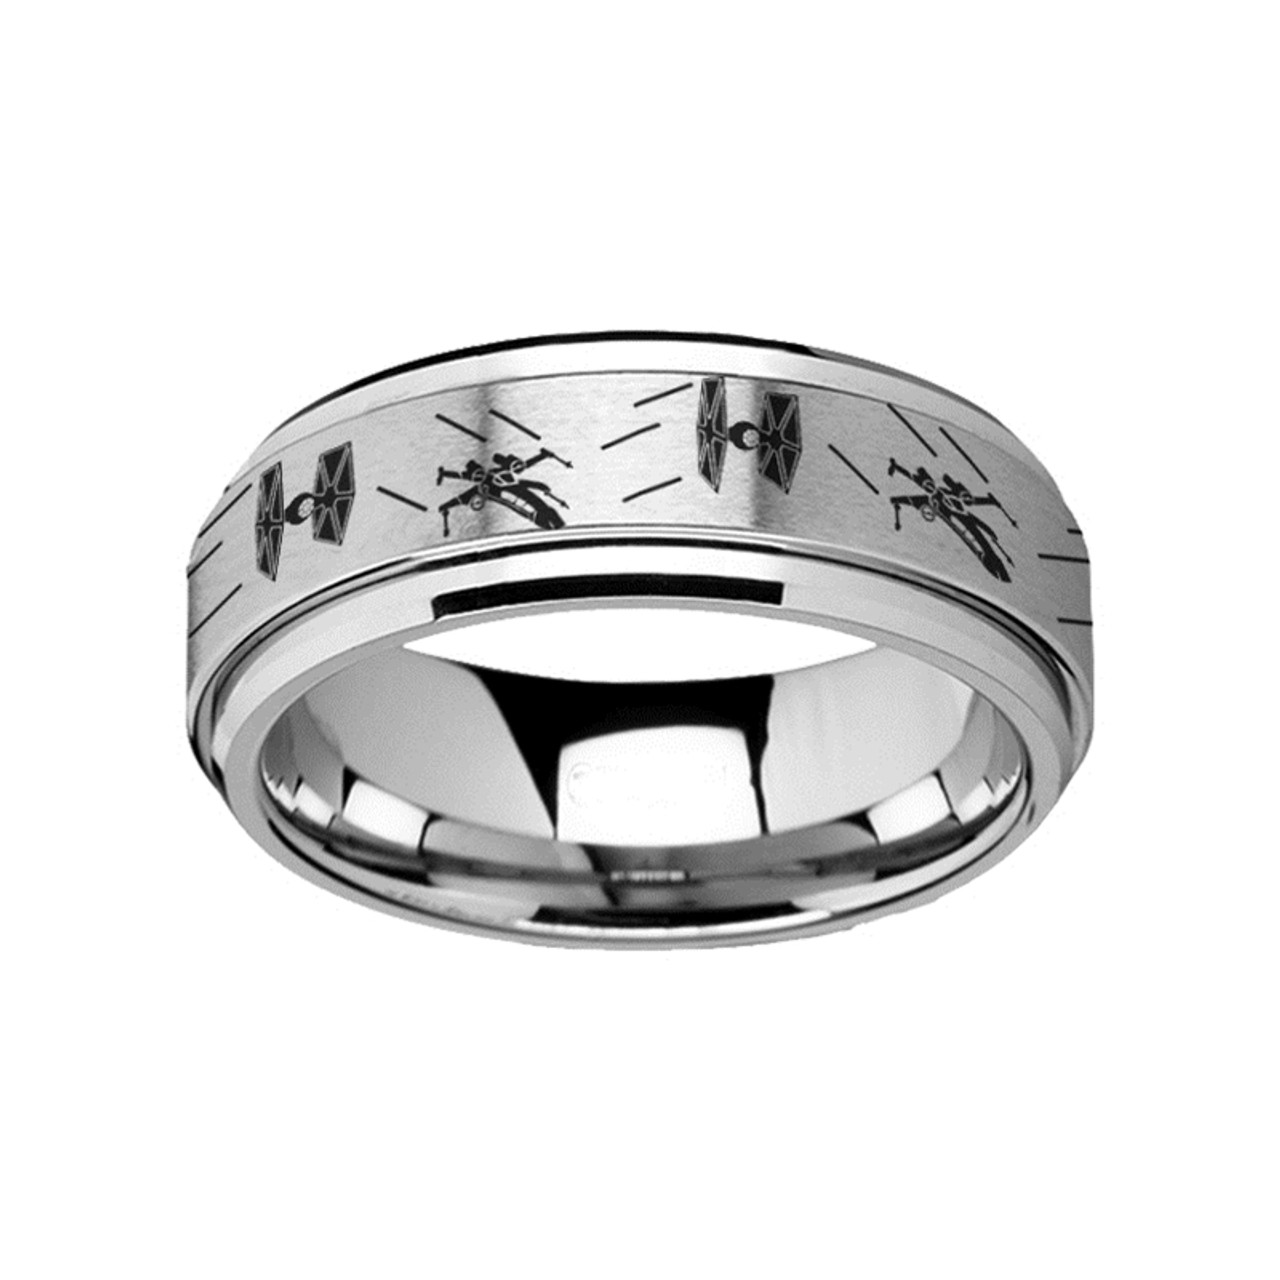 Star Spinning Tie Fighter X Wing Design Engraved Tungsten Carbide Wedding Band